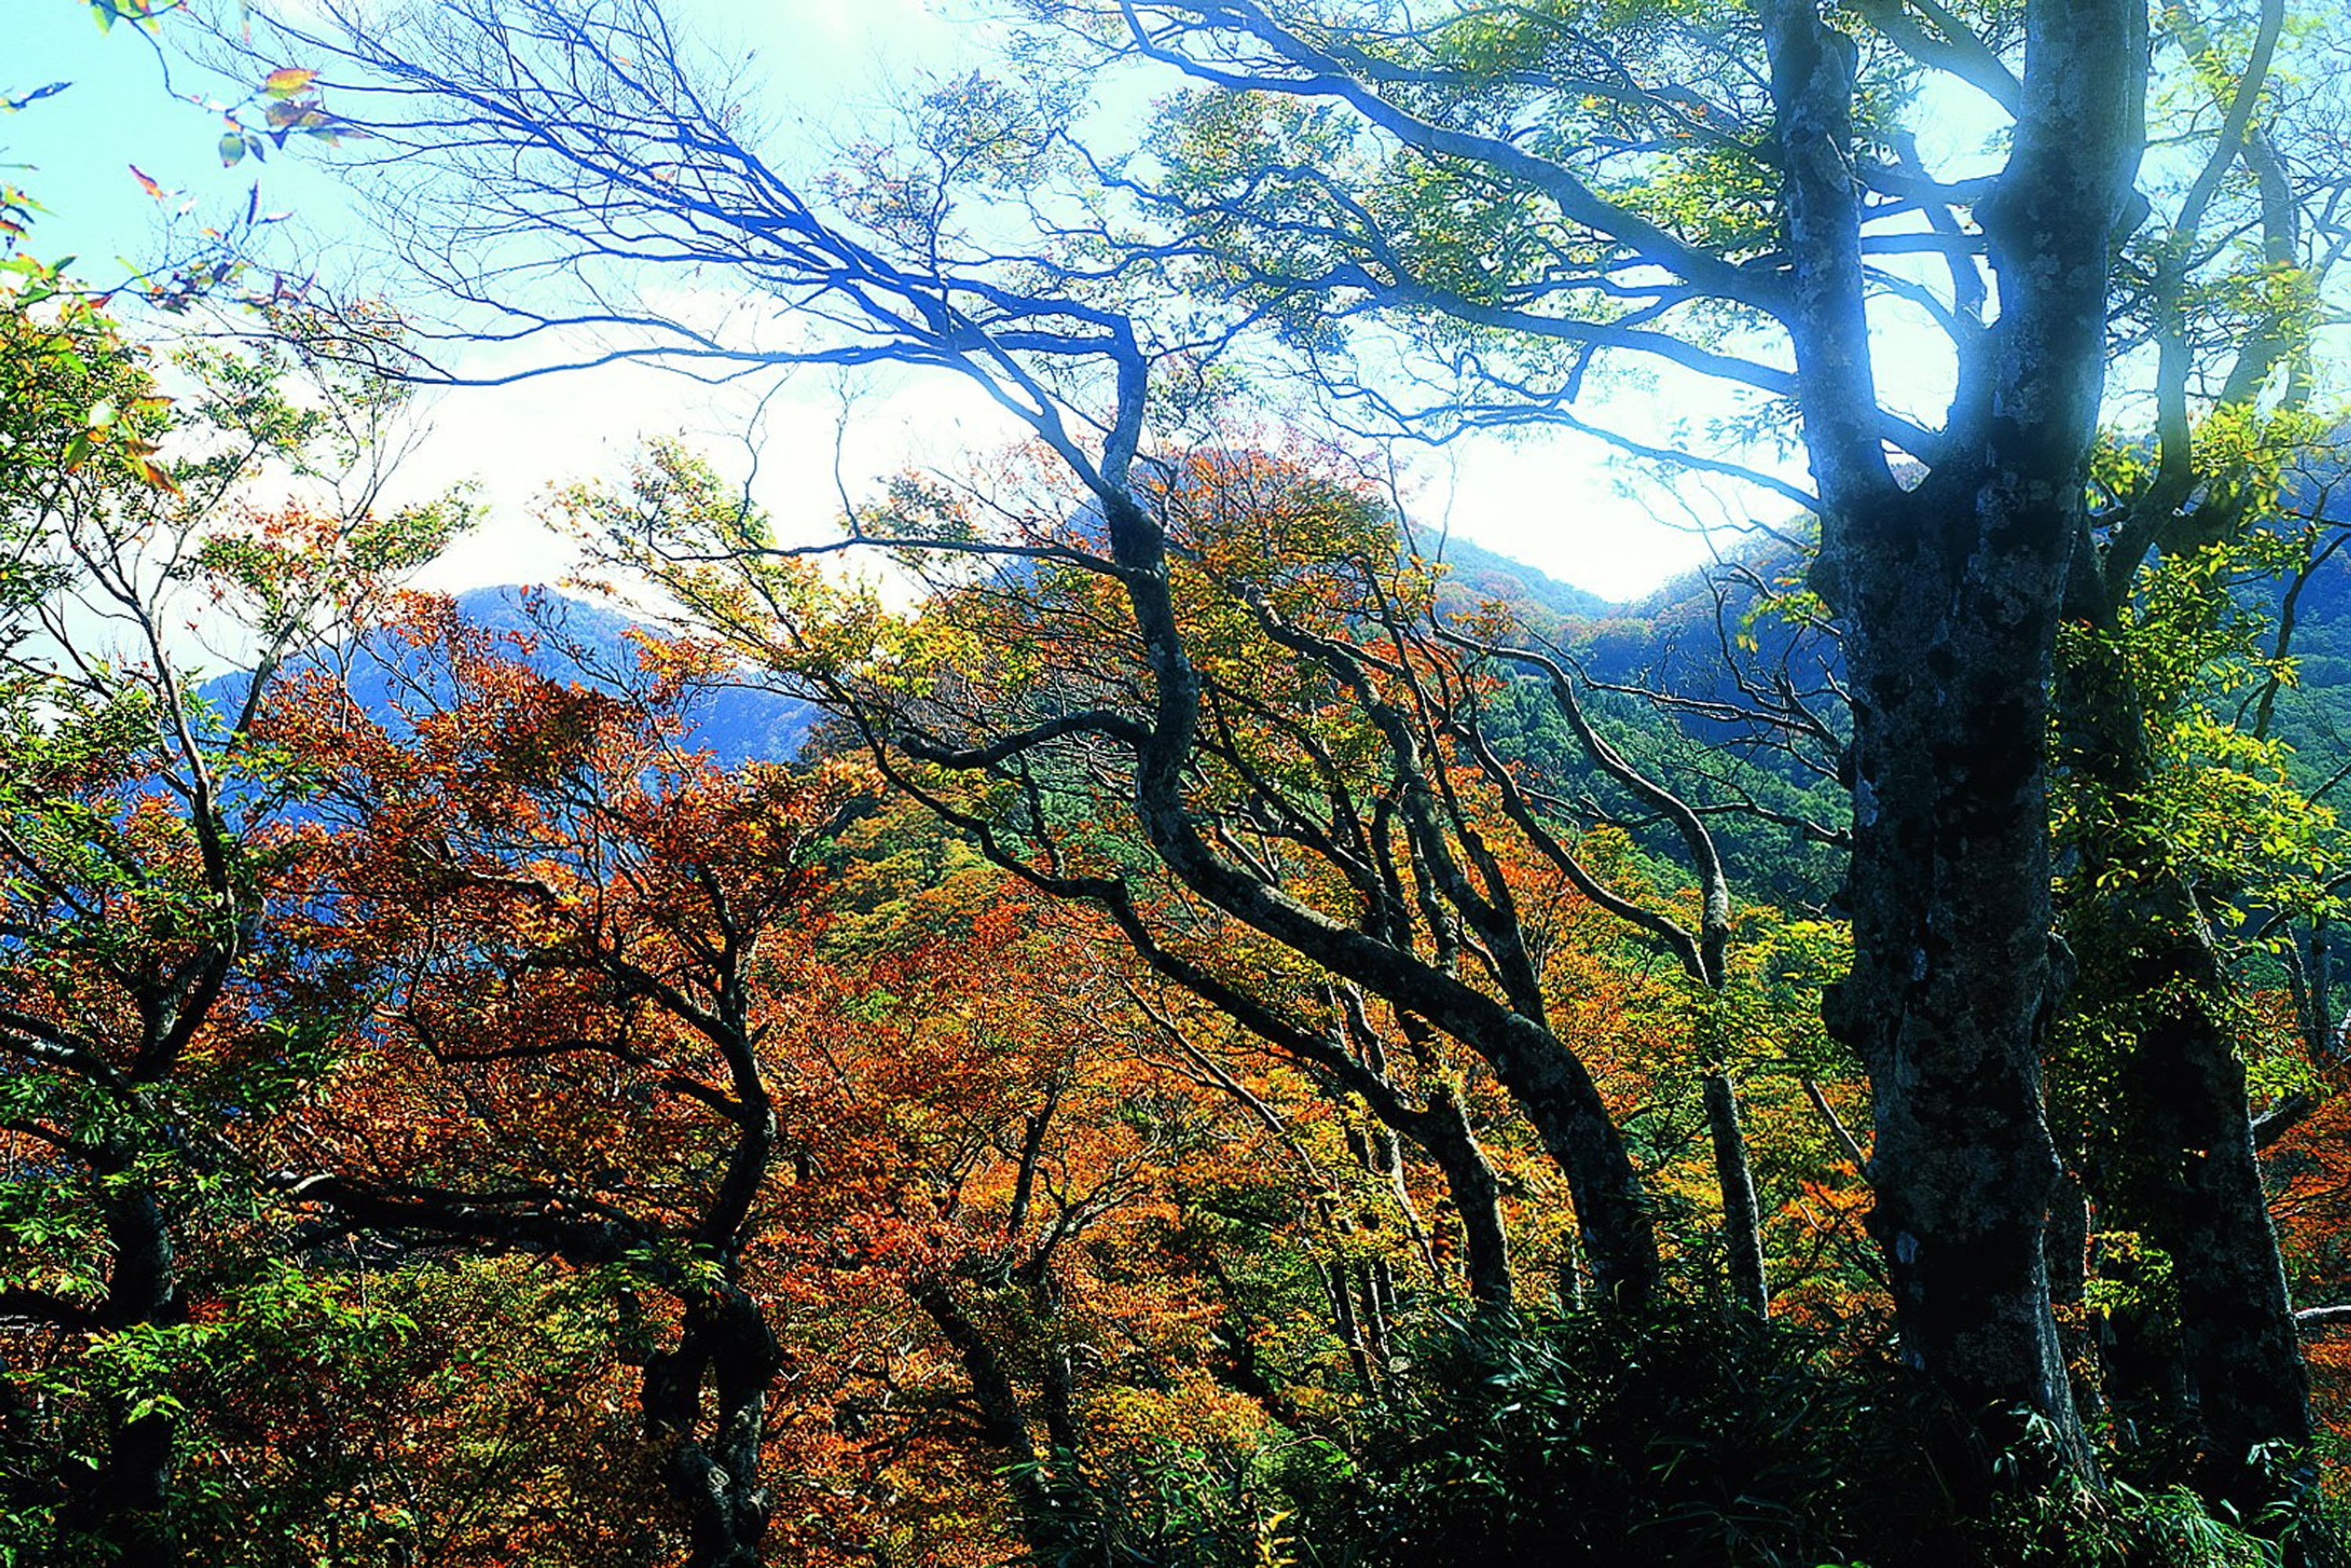 (Taipingshan; photo courtesy of the Forestry Bureau)